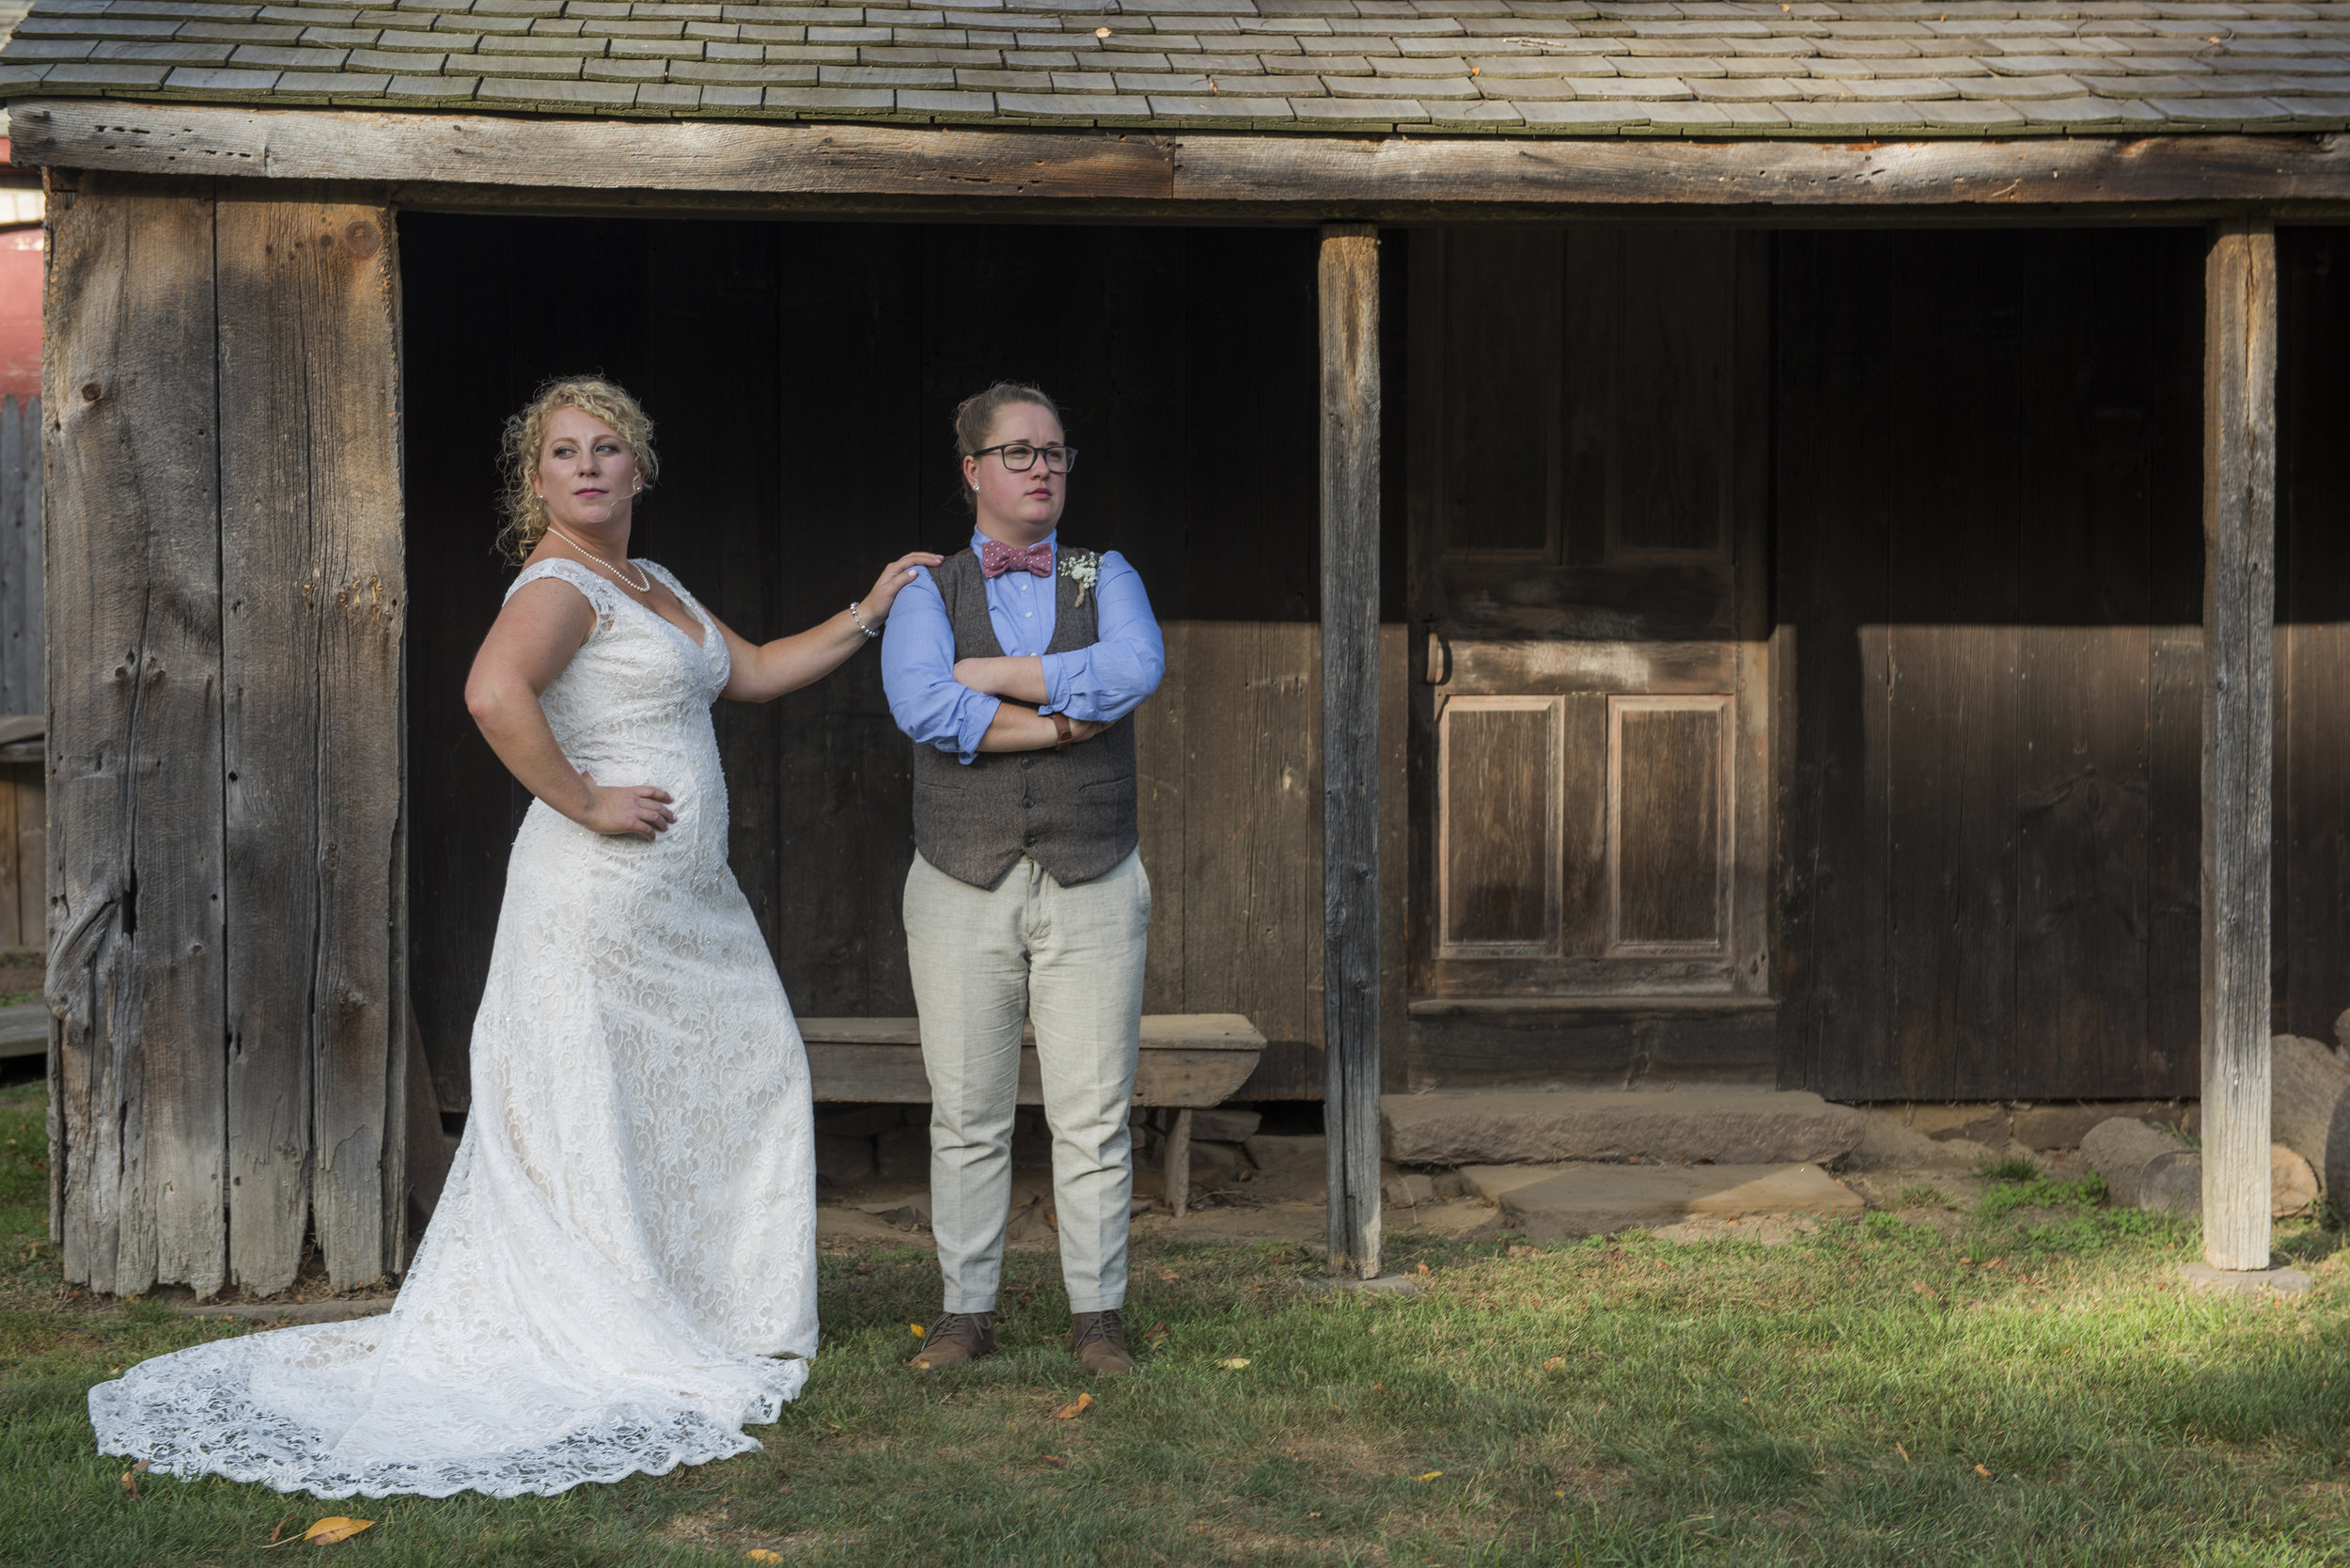 The Webb Barn in Old Wethersfield, CT has great area's for wedding photos.